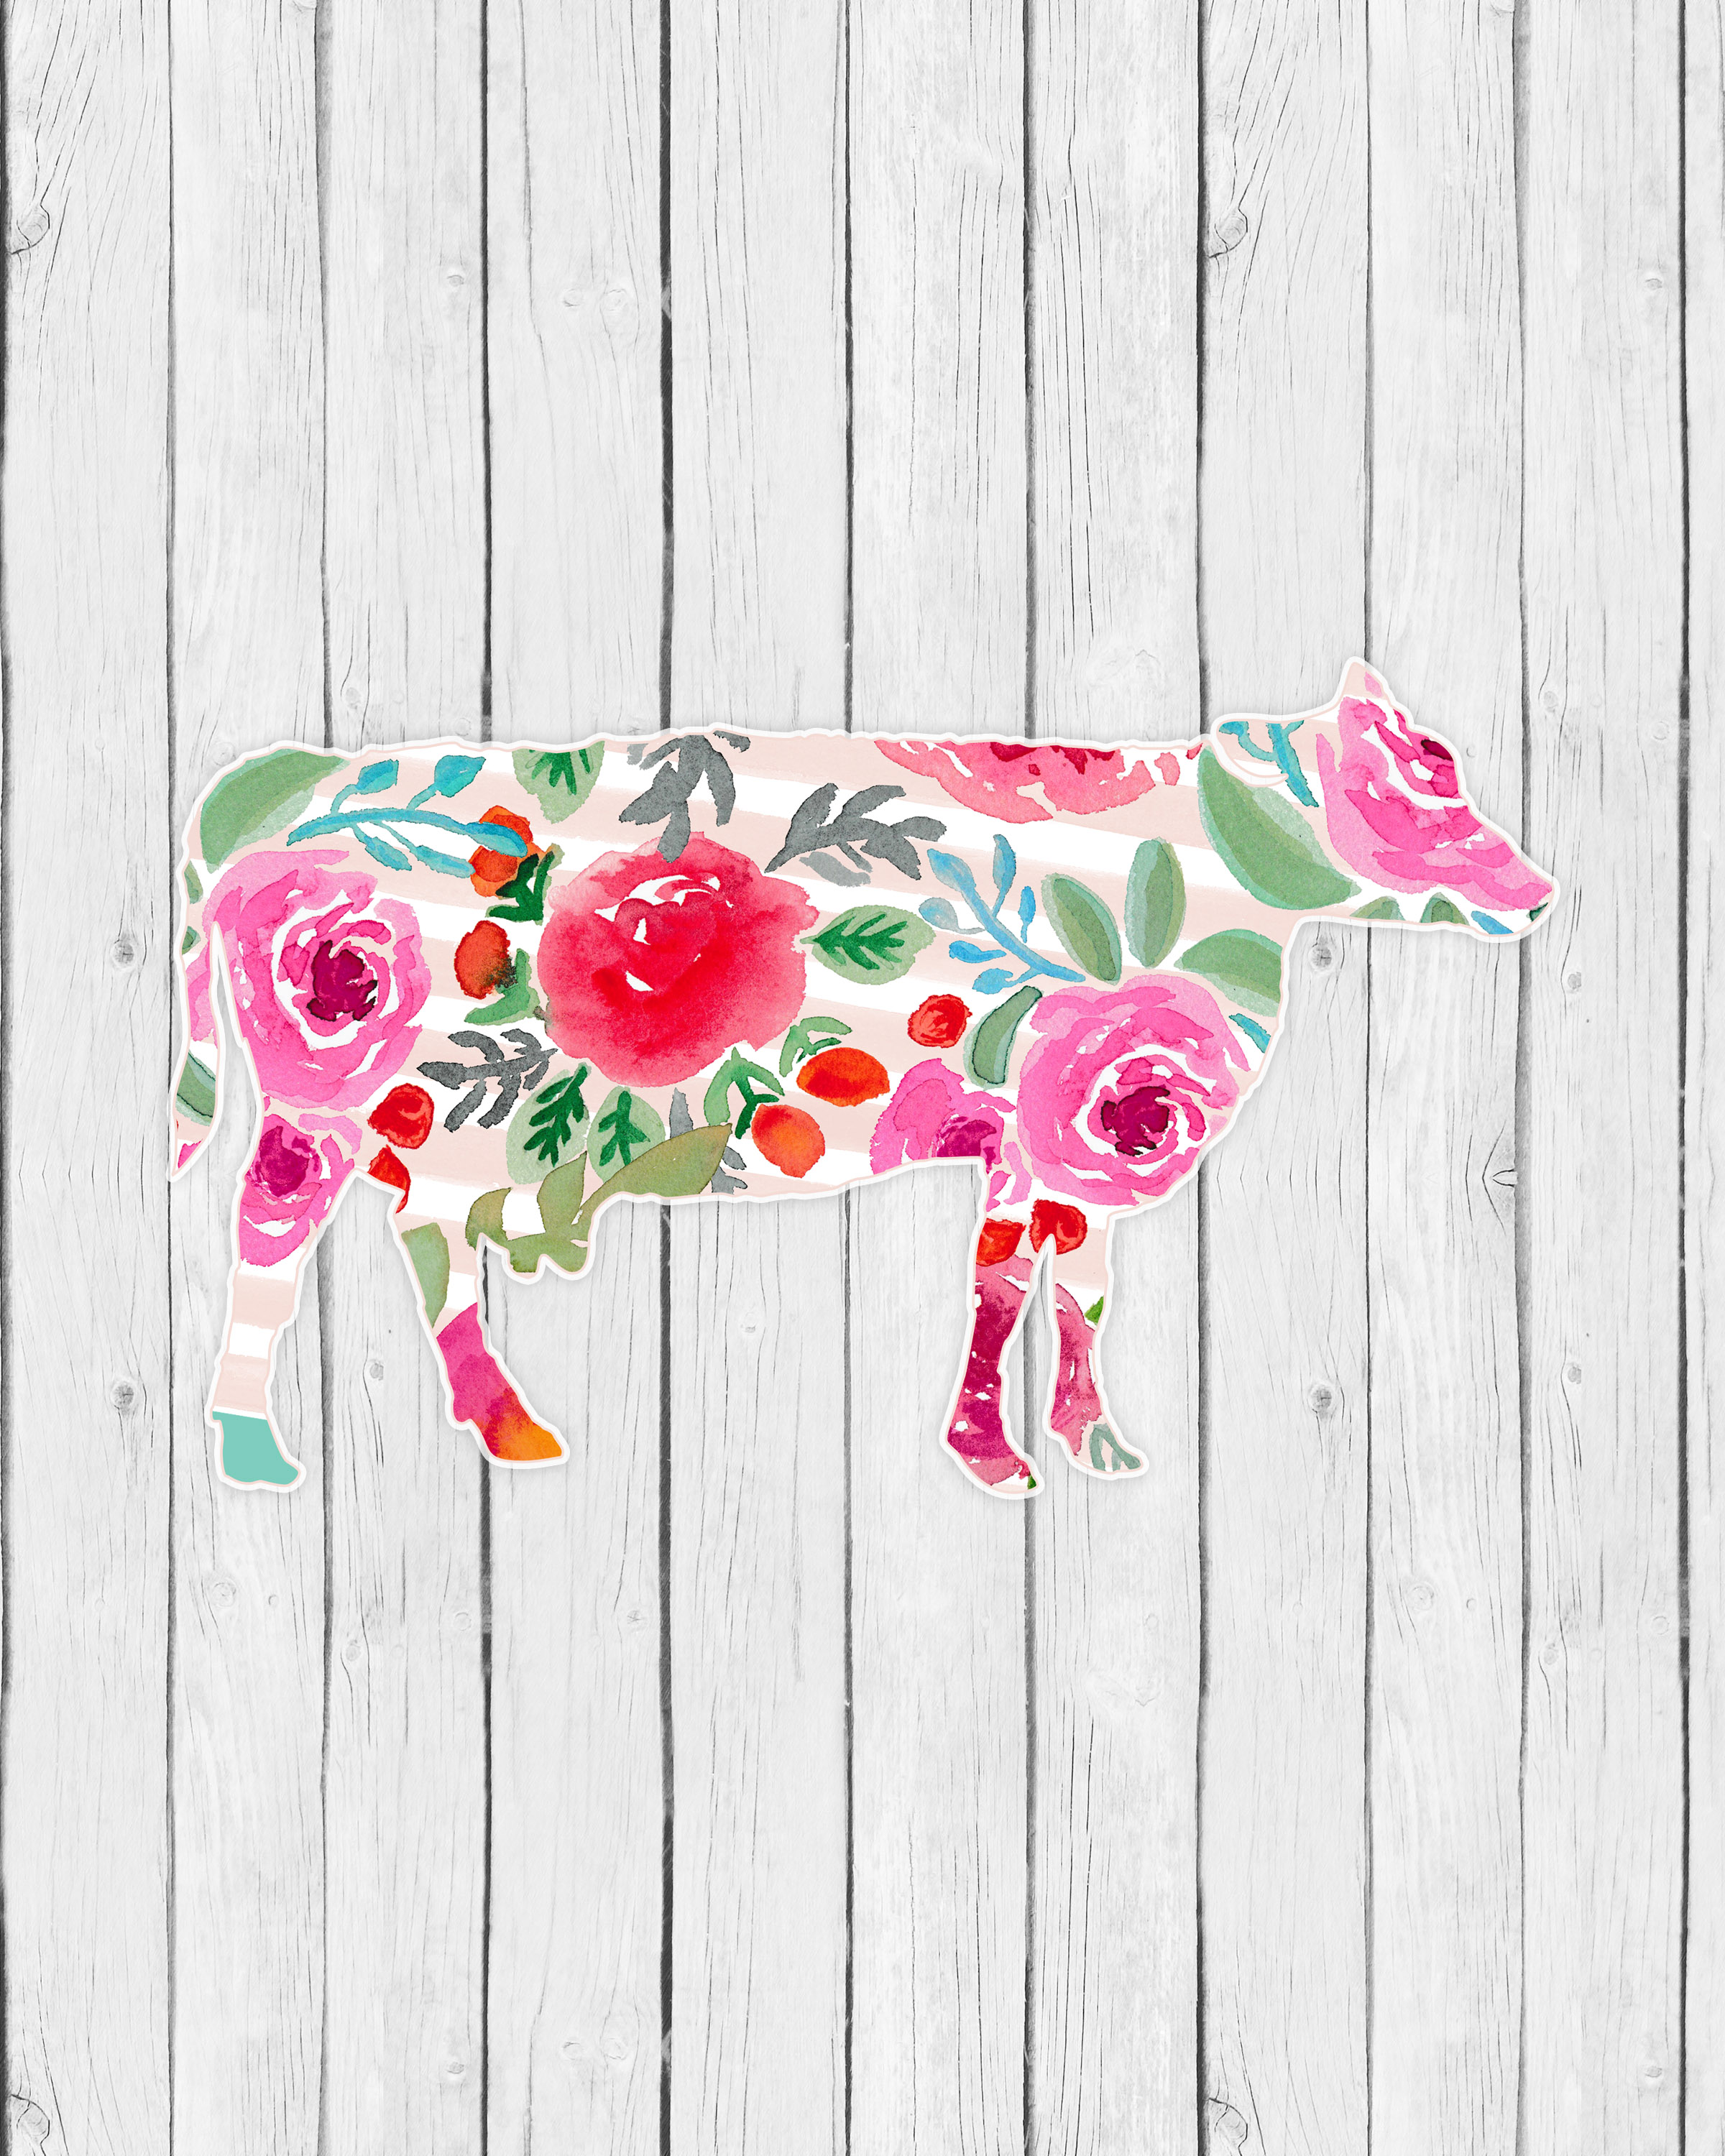 Free Printable Farm Animal Floral Wall Art - The Cottage Market